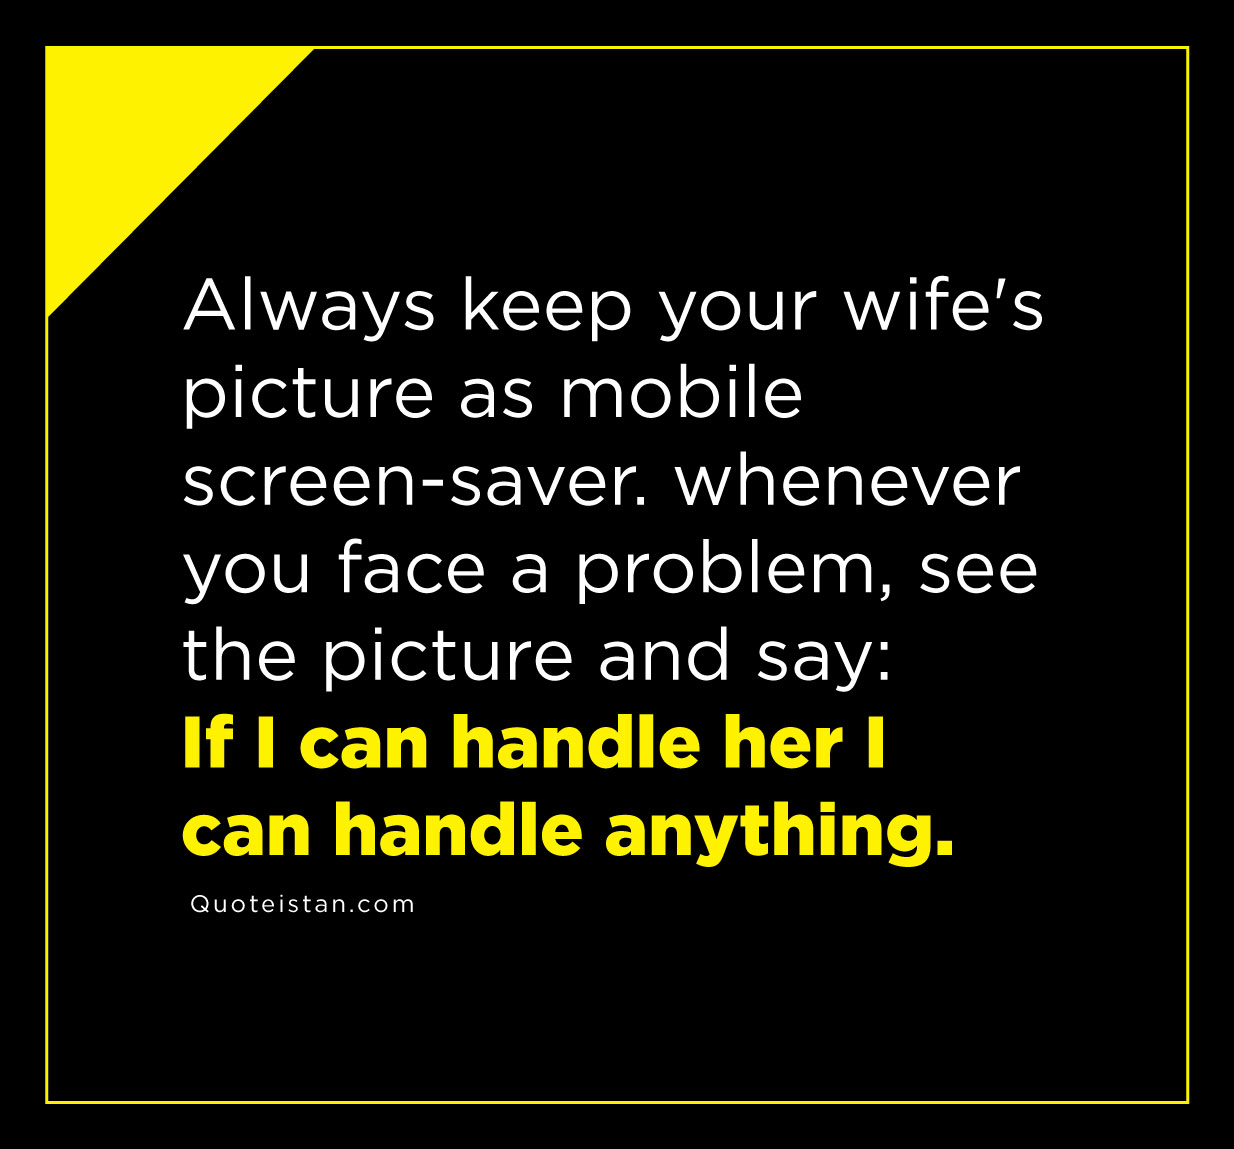 how to handle your wife